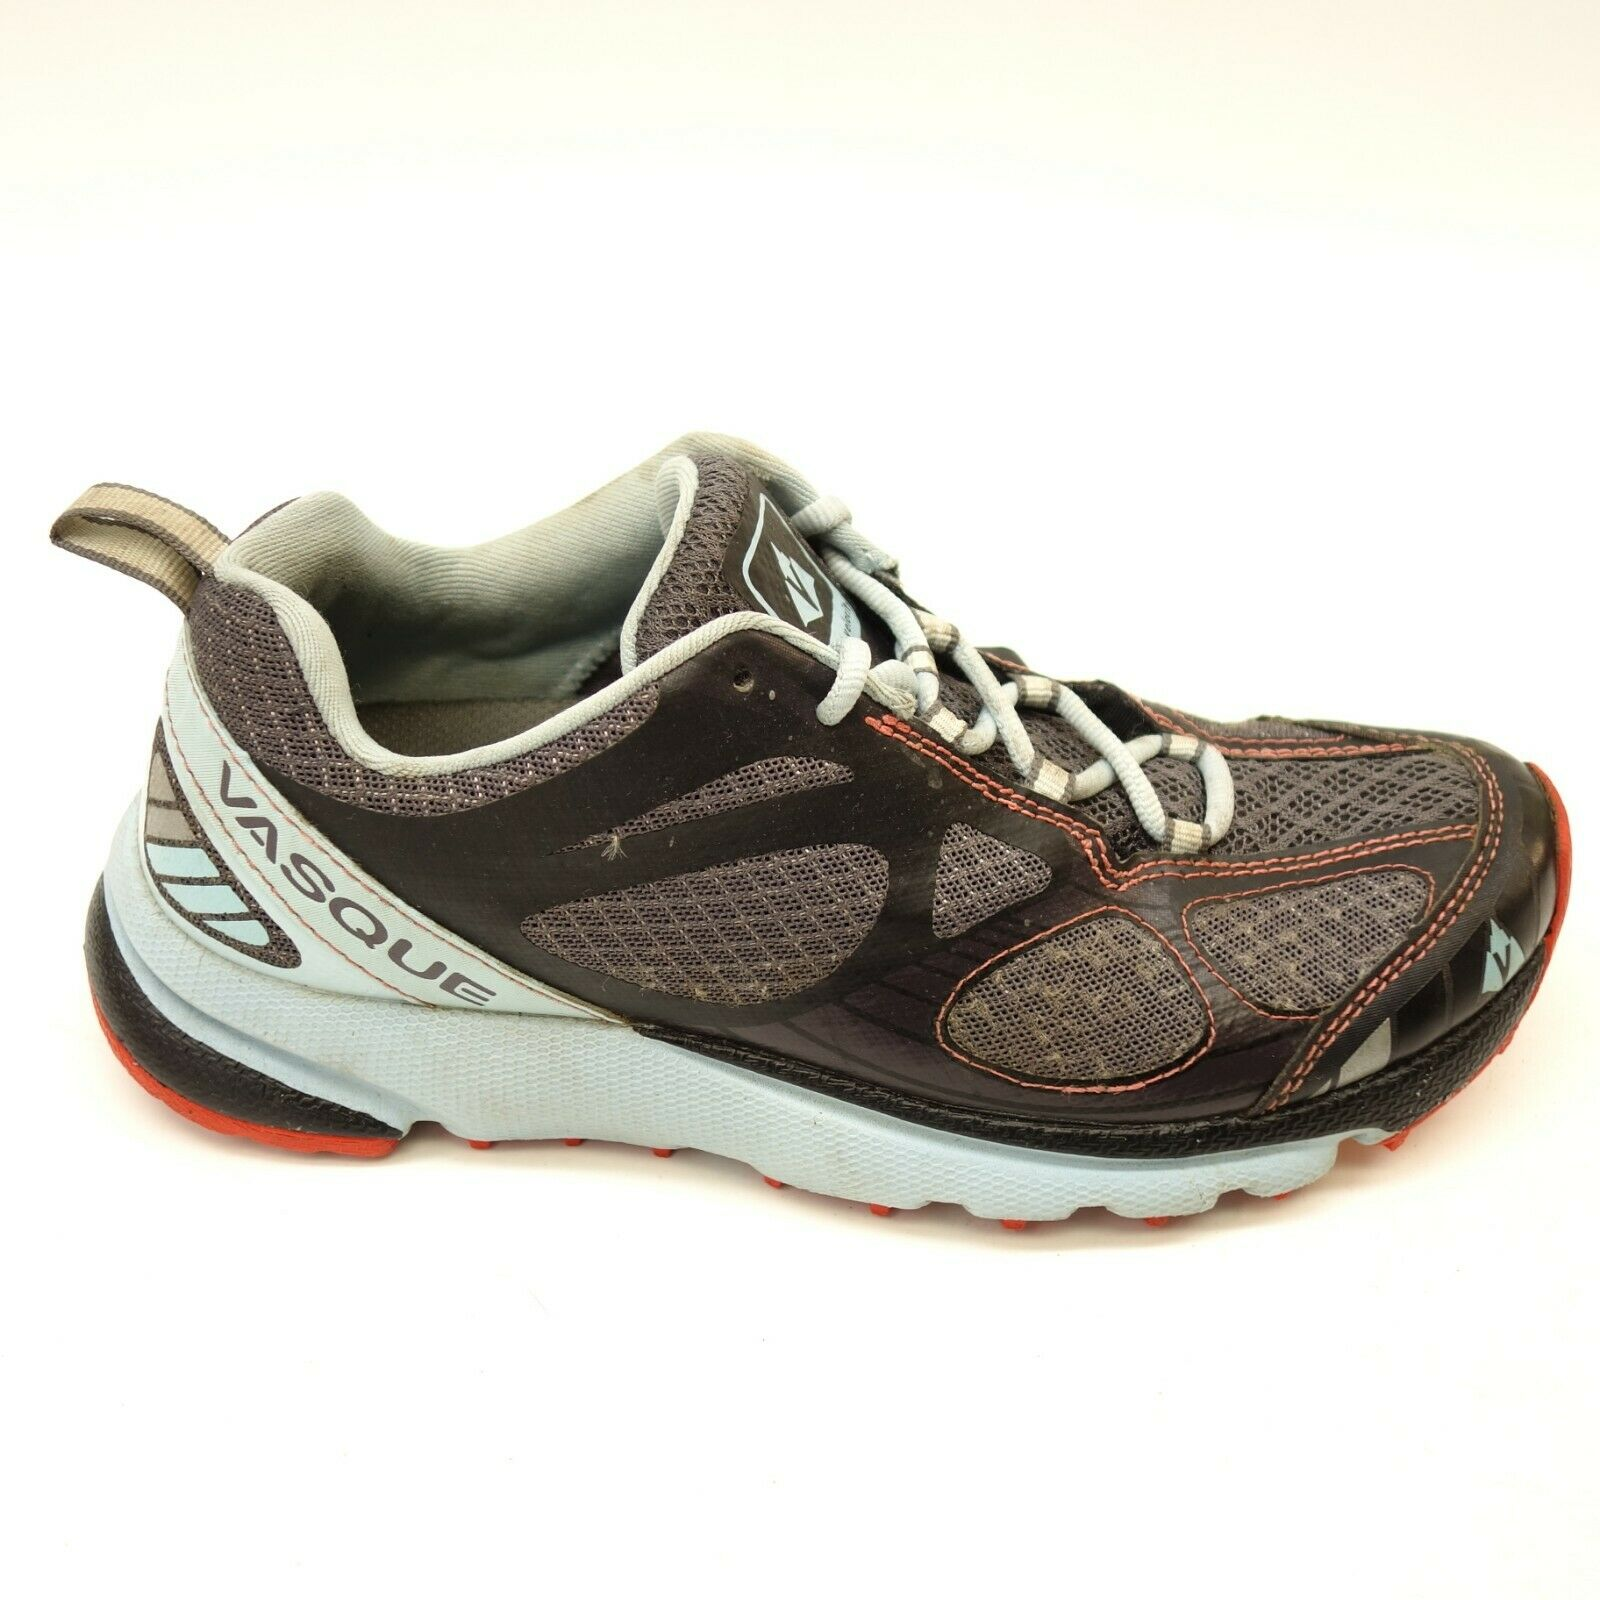 Vasque Womens Size 7.5 Constant Velocity Athletic Trail Running Mesh shoes